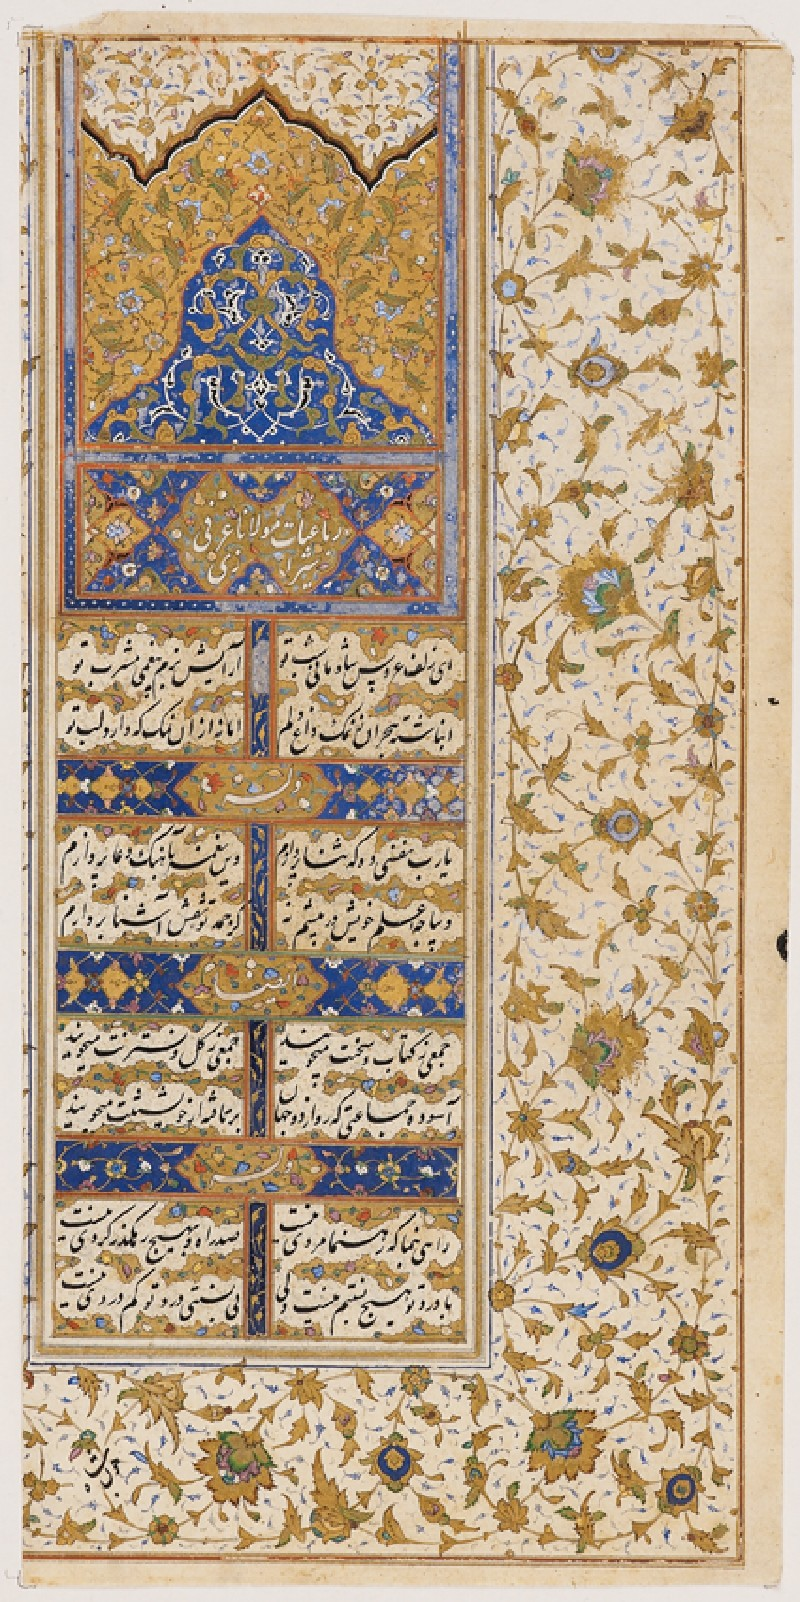 Opening page from the Ruba'yat of Urfi of Shiraz (EA1962.158.a, front              )